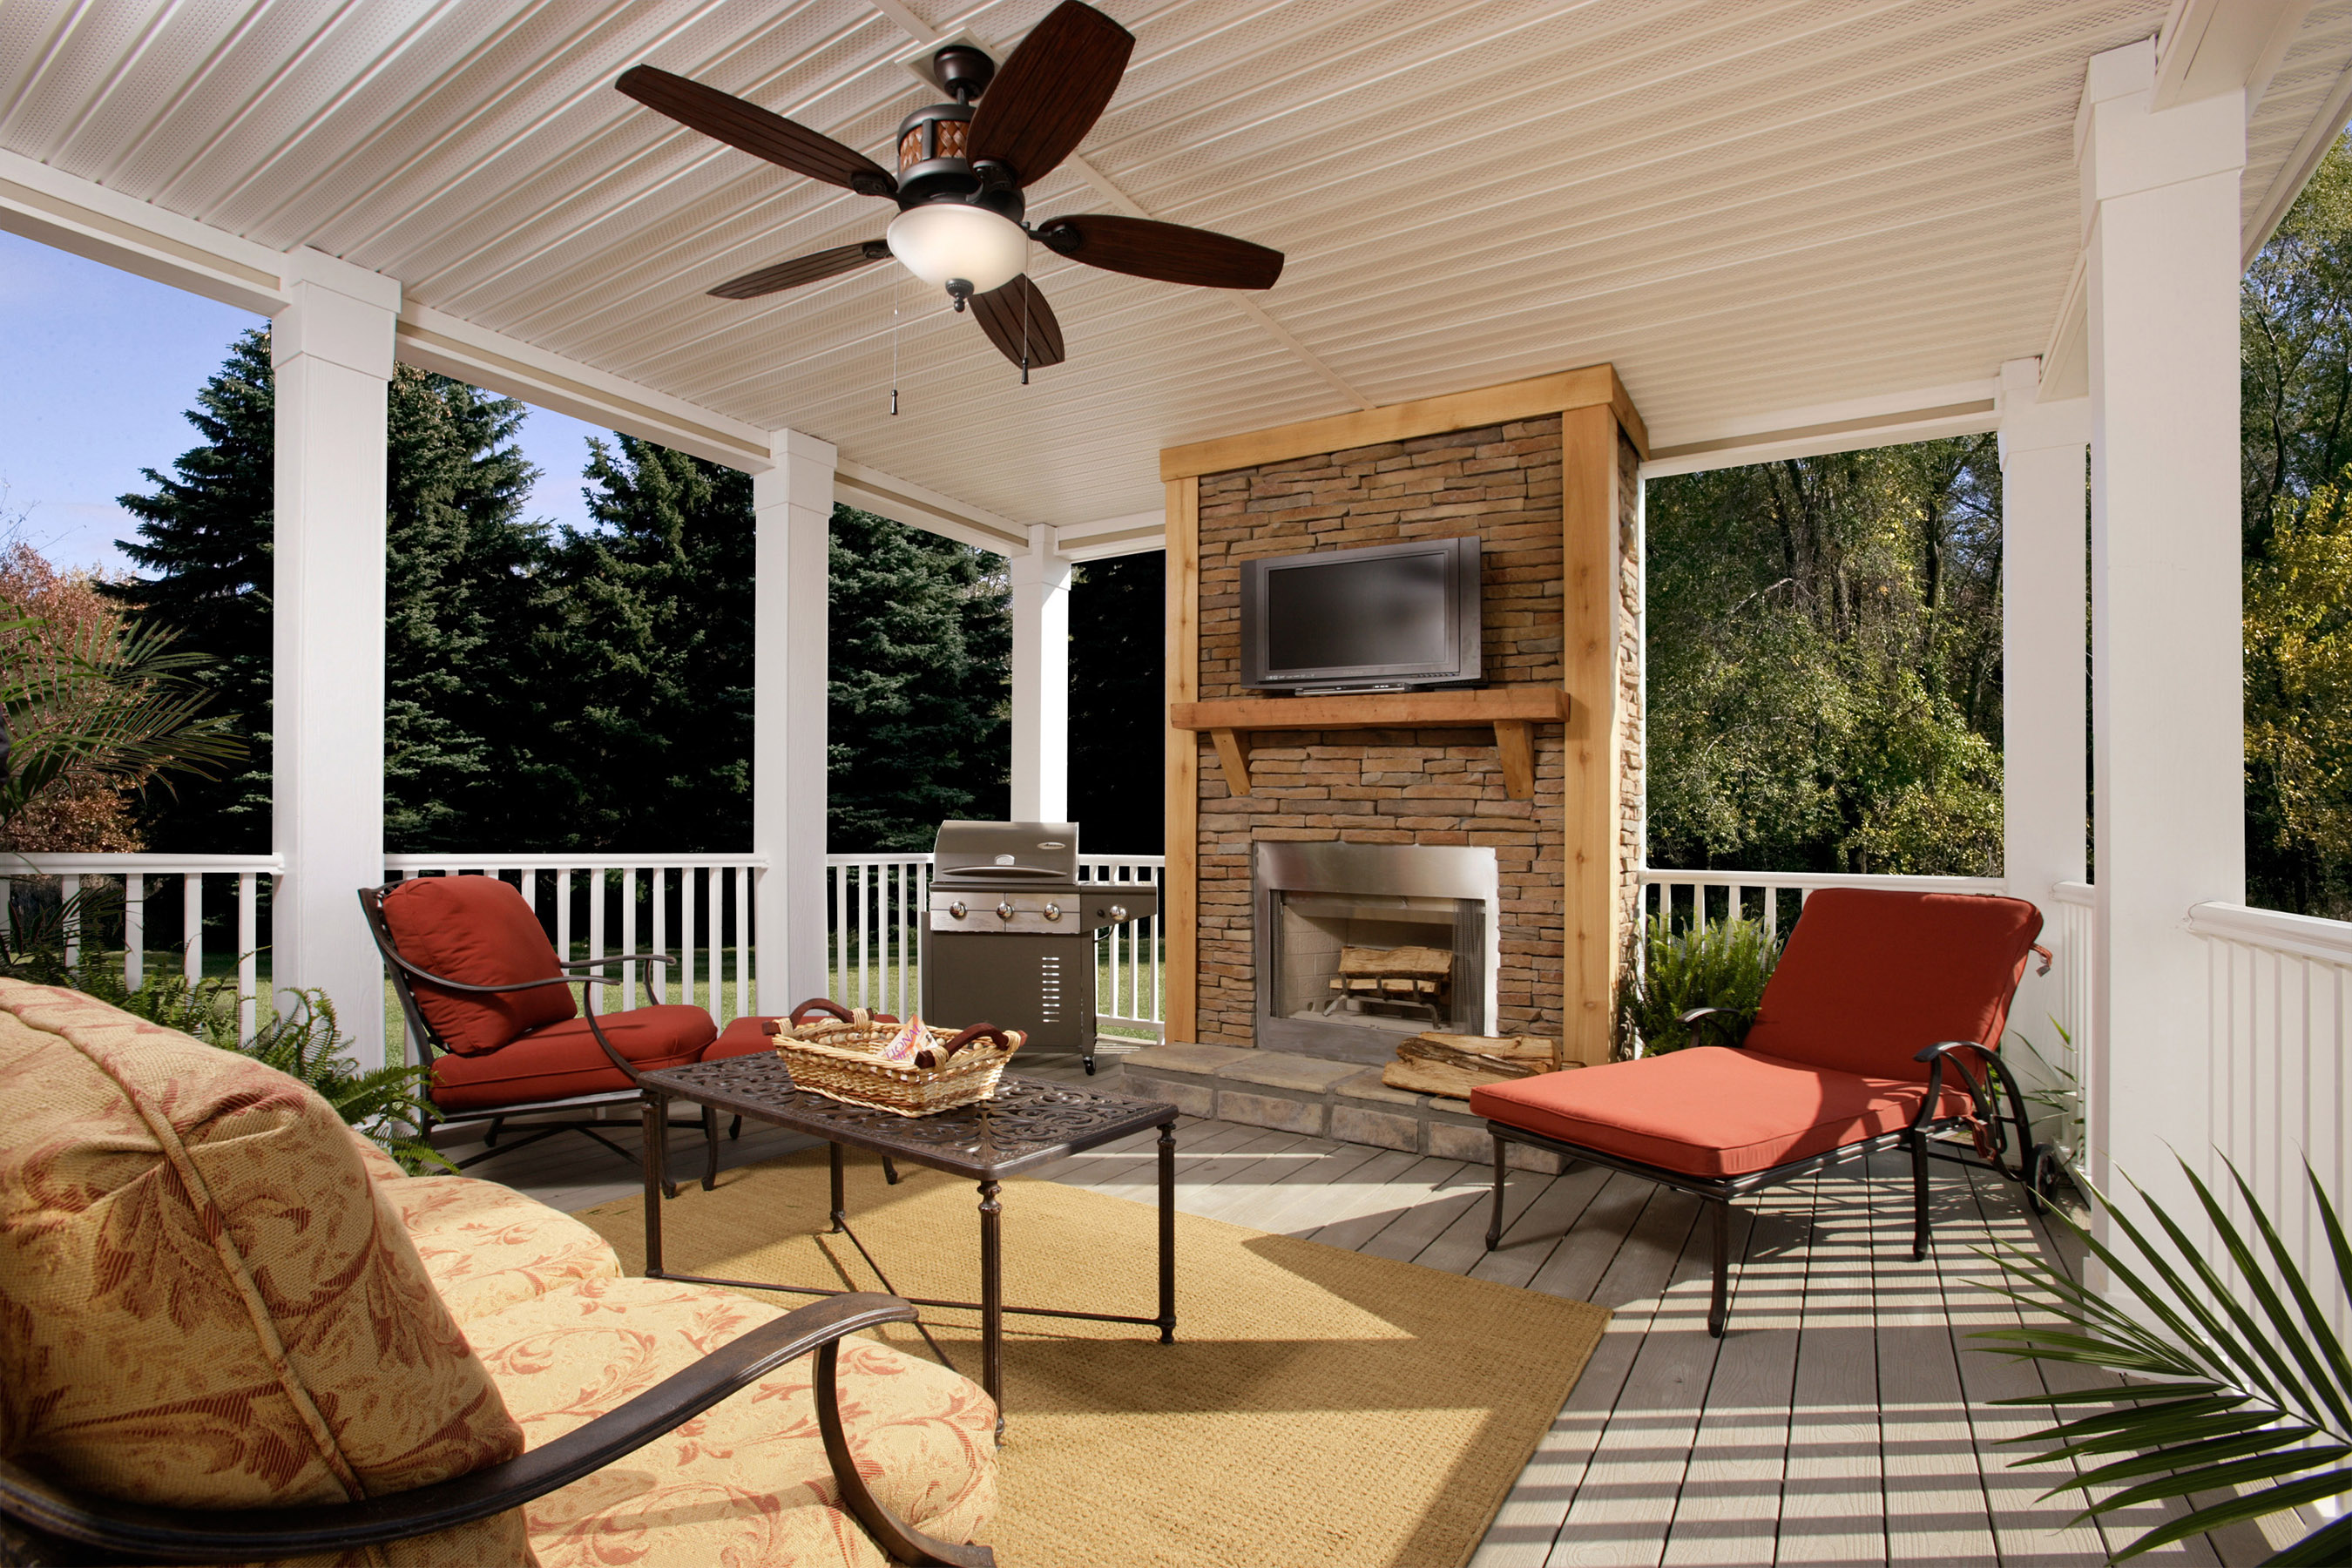 Deck out your outdoor living space with gift cards from Lowe's* through Clayton Homes' Made In The Shade Summer Sale.